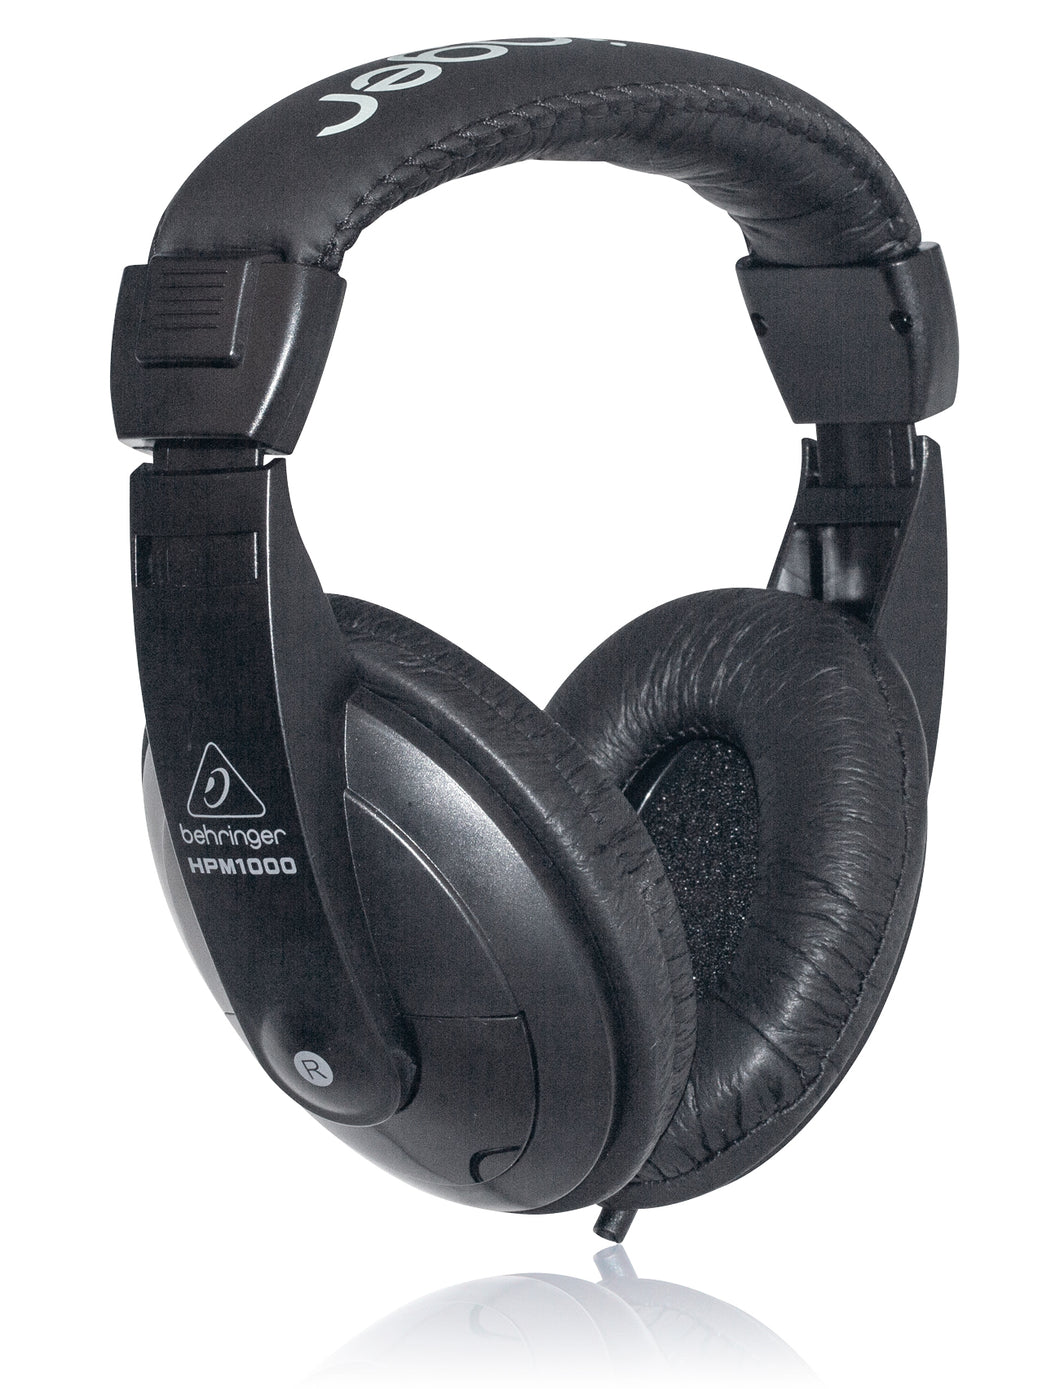 Behringer HPM1000 Black Studio Headphones